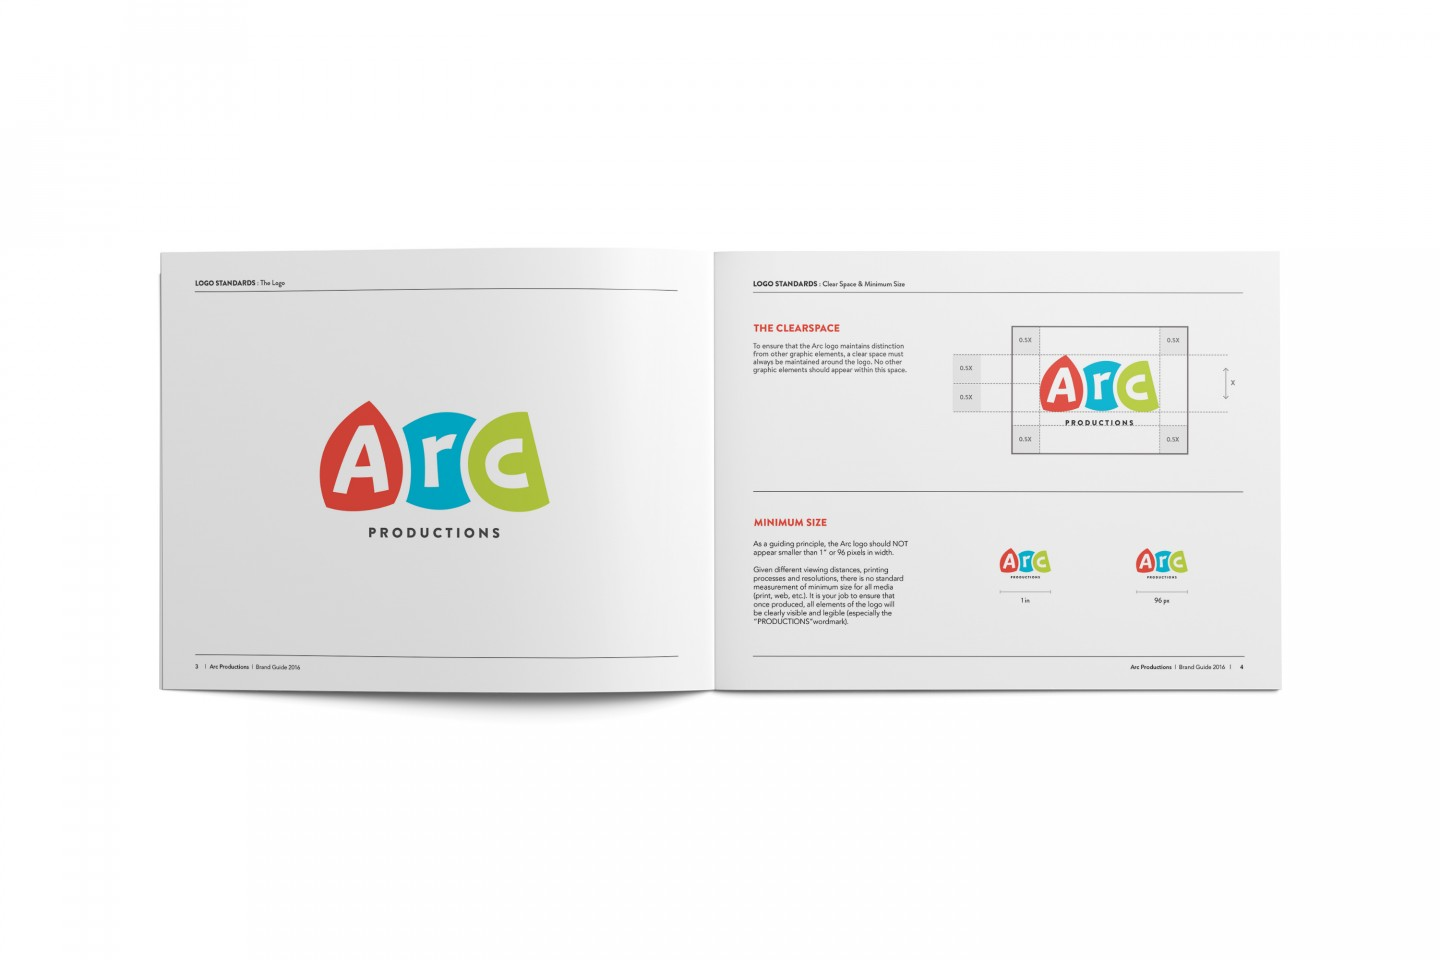 Arc_BrandGuide_05 booklet